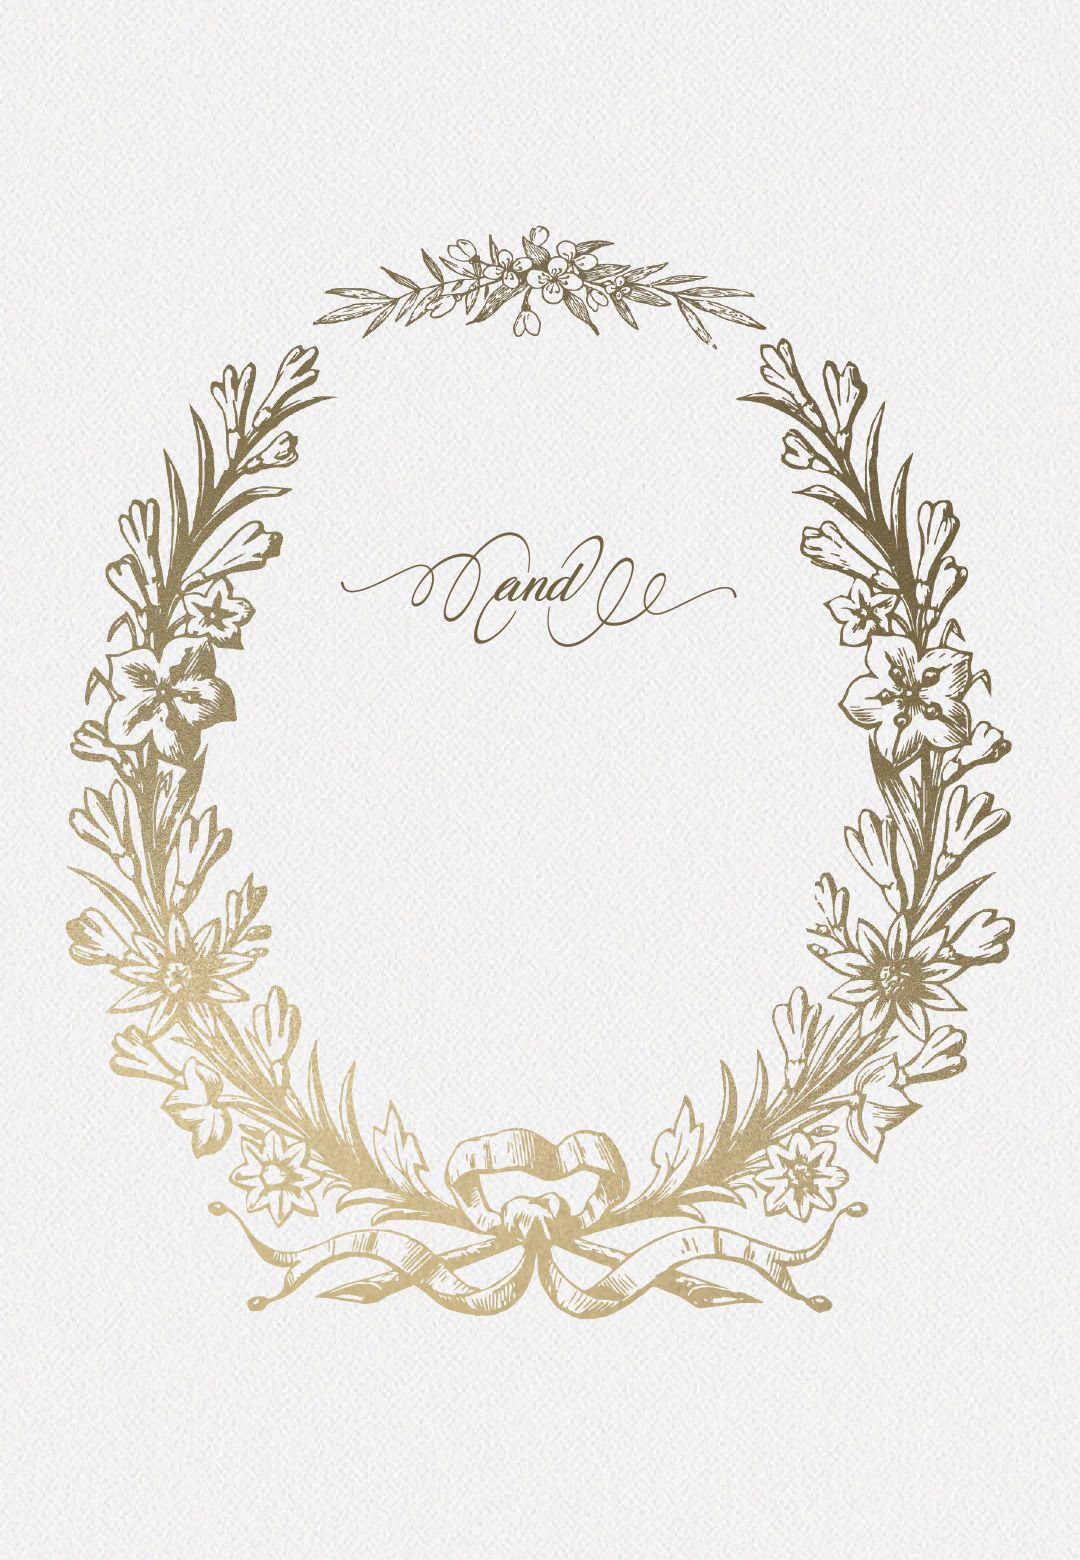 Golden Wreath - Rehearsal Dinner Party Invitation Template (Free